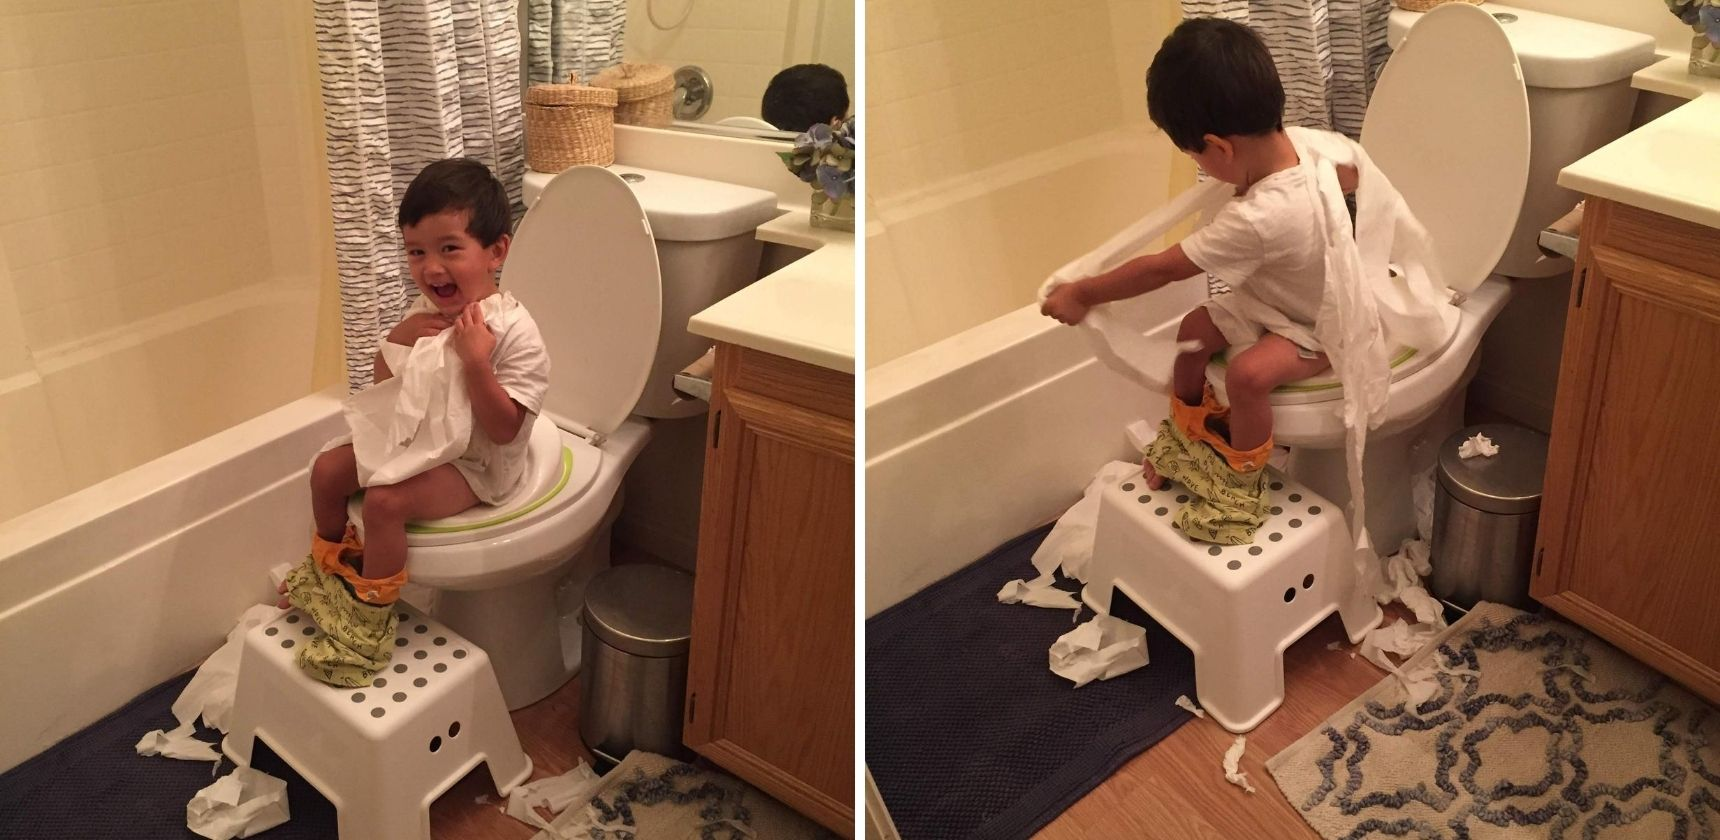 Boy Having Fun Potty Training